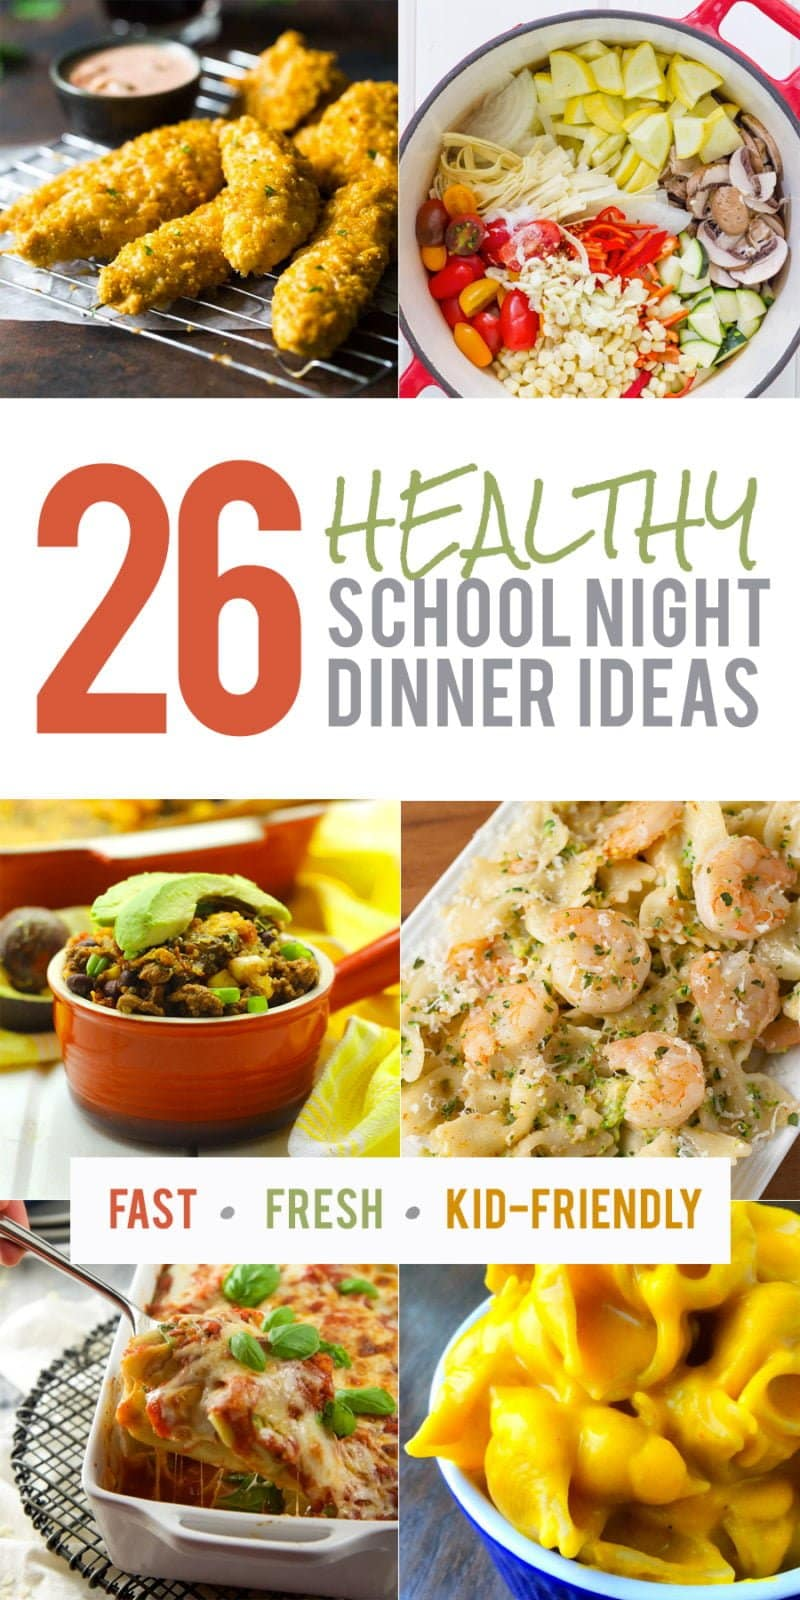 26 healthy school night dinner ideas wholefully 26 healthy school night dinner ideas forumfinder Gallery